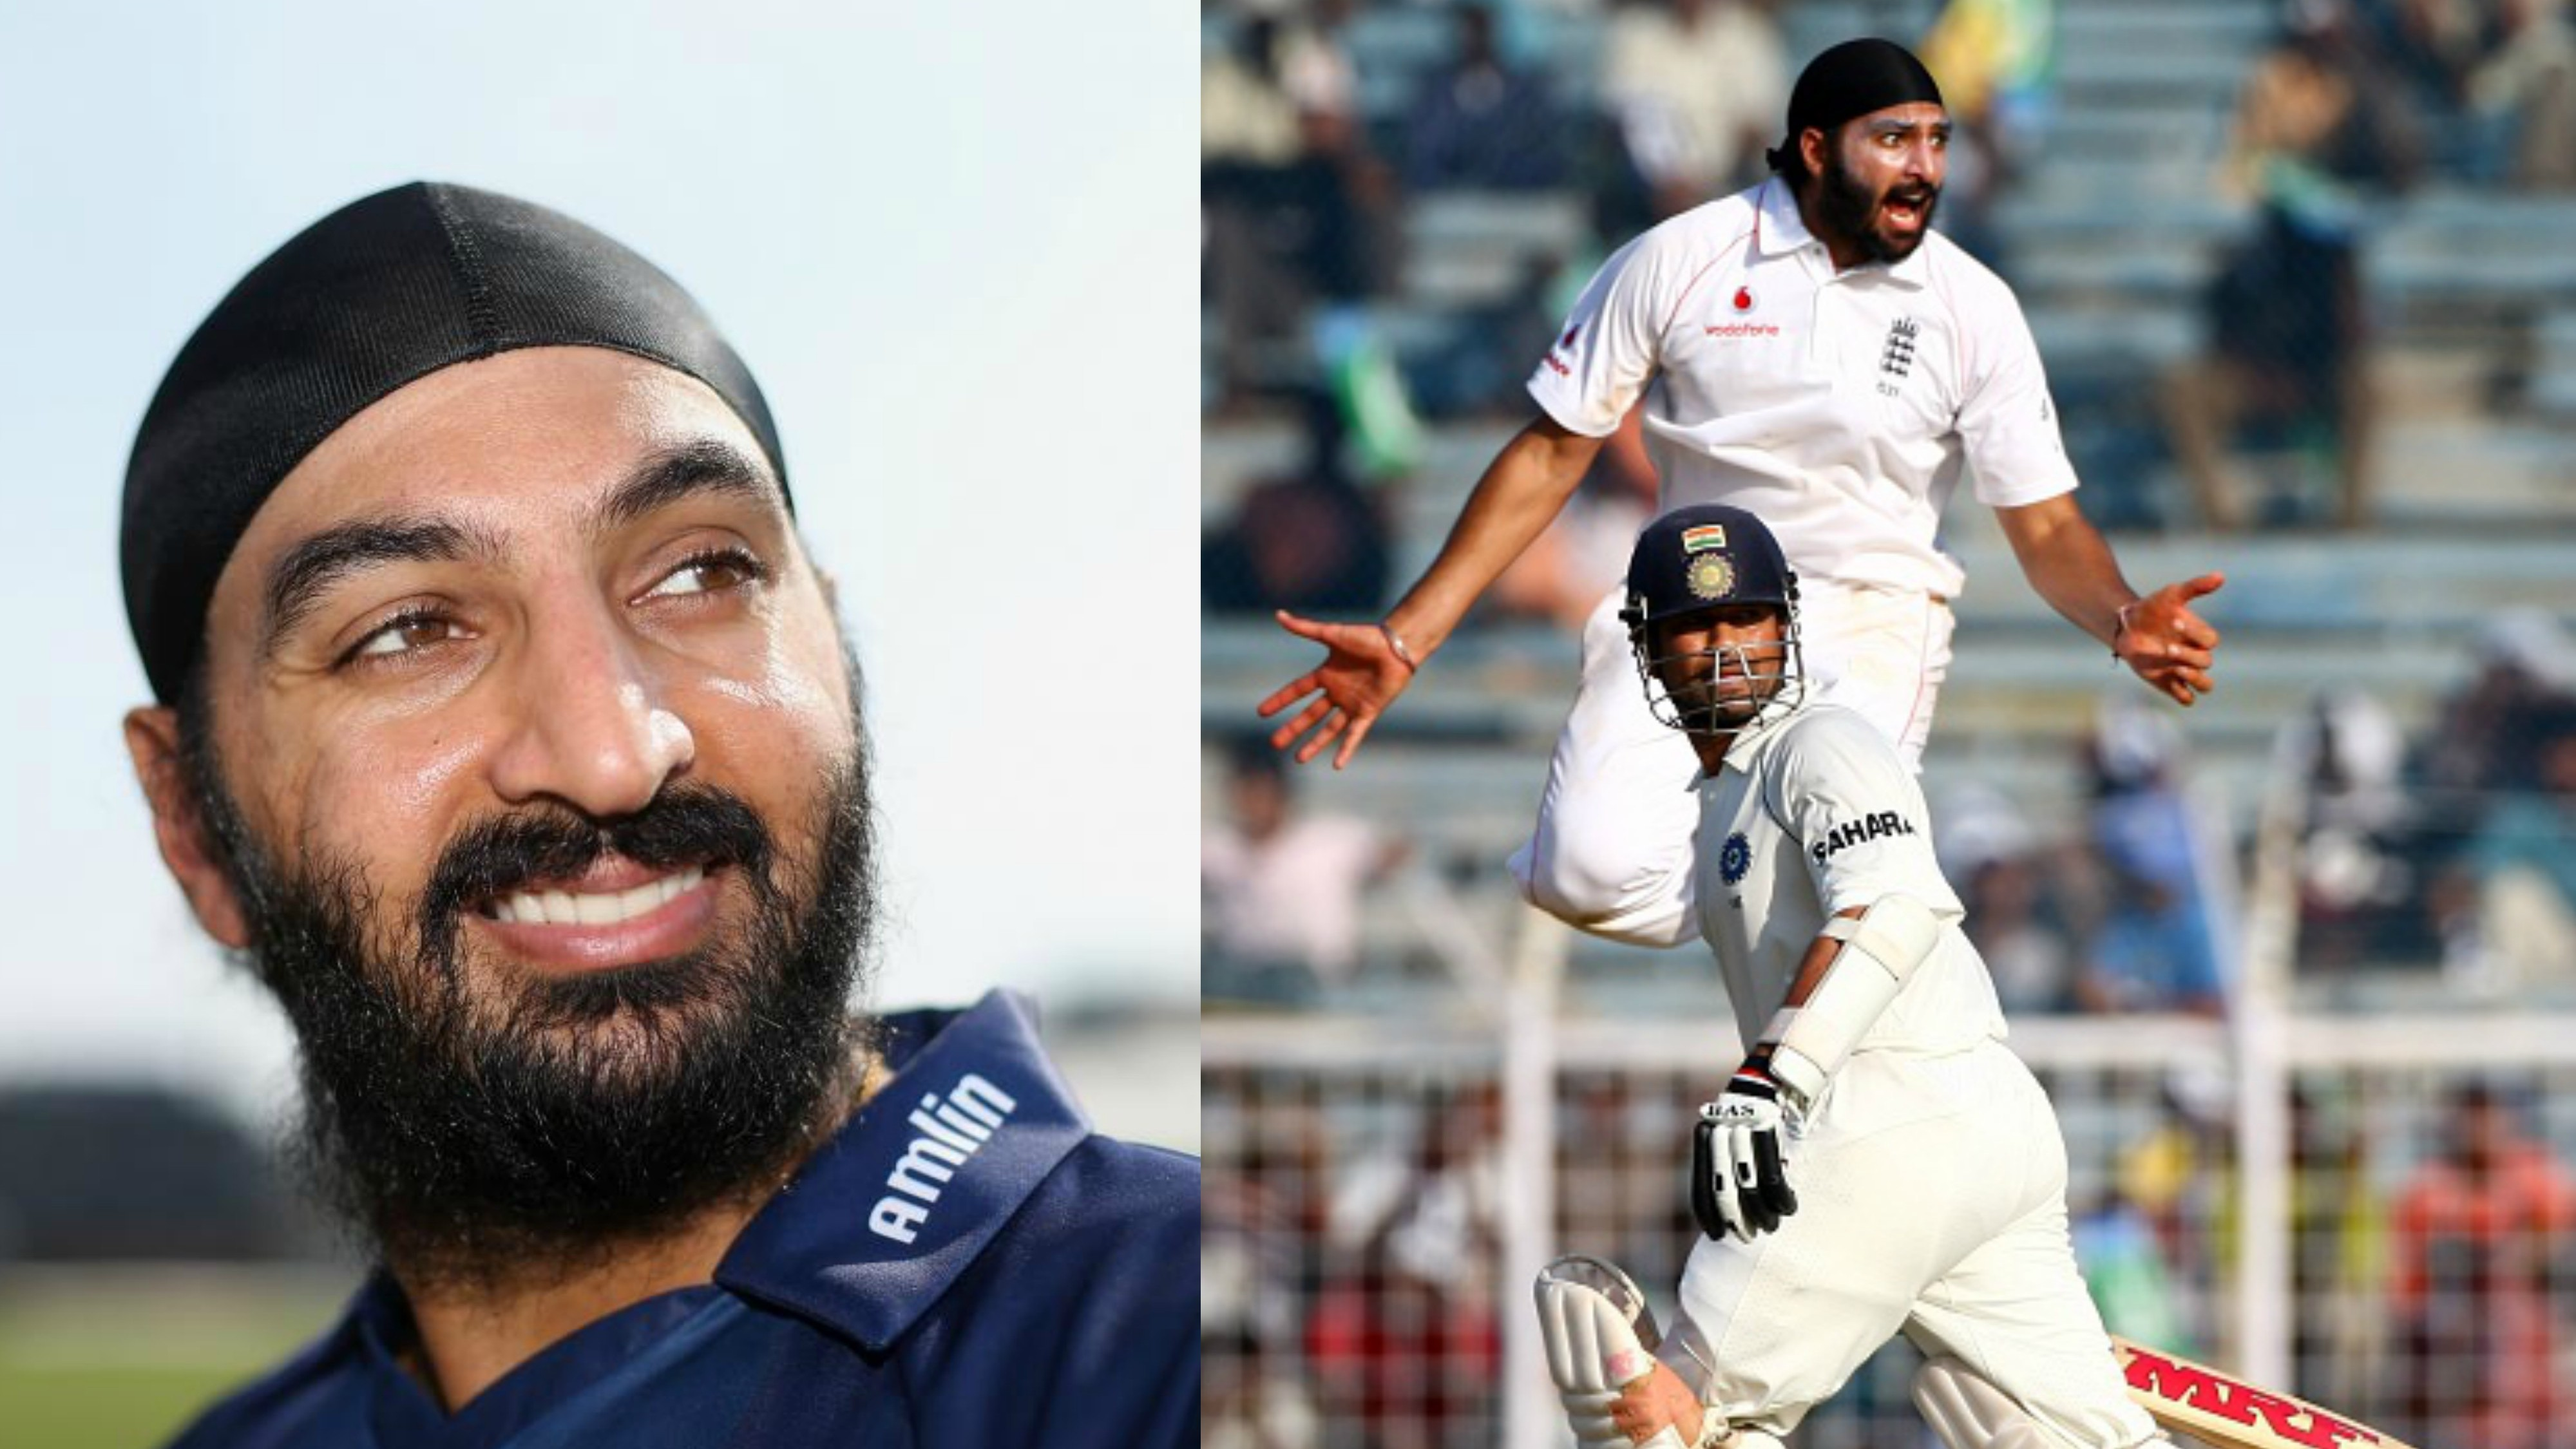 Monty Panesar recalls his dream delivery to dismiss Sachin Tendulkar in 2012-13 Test series